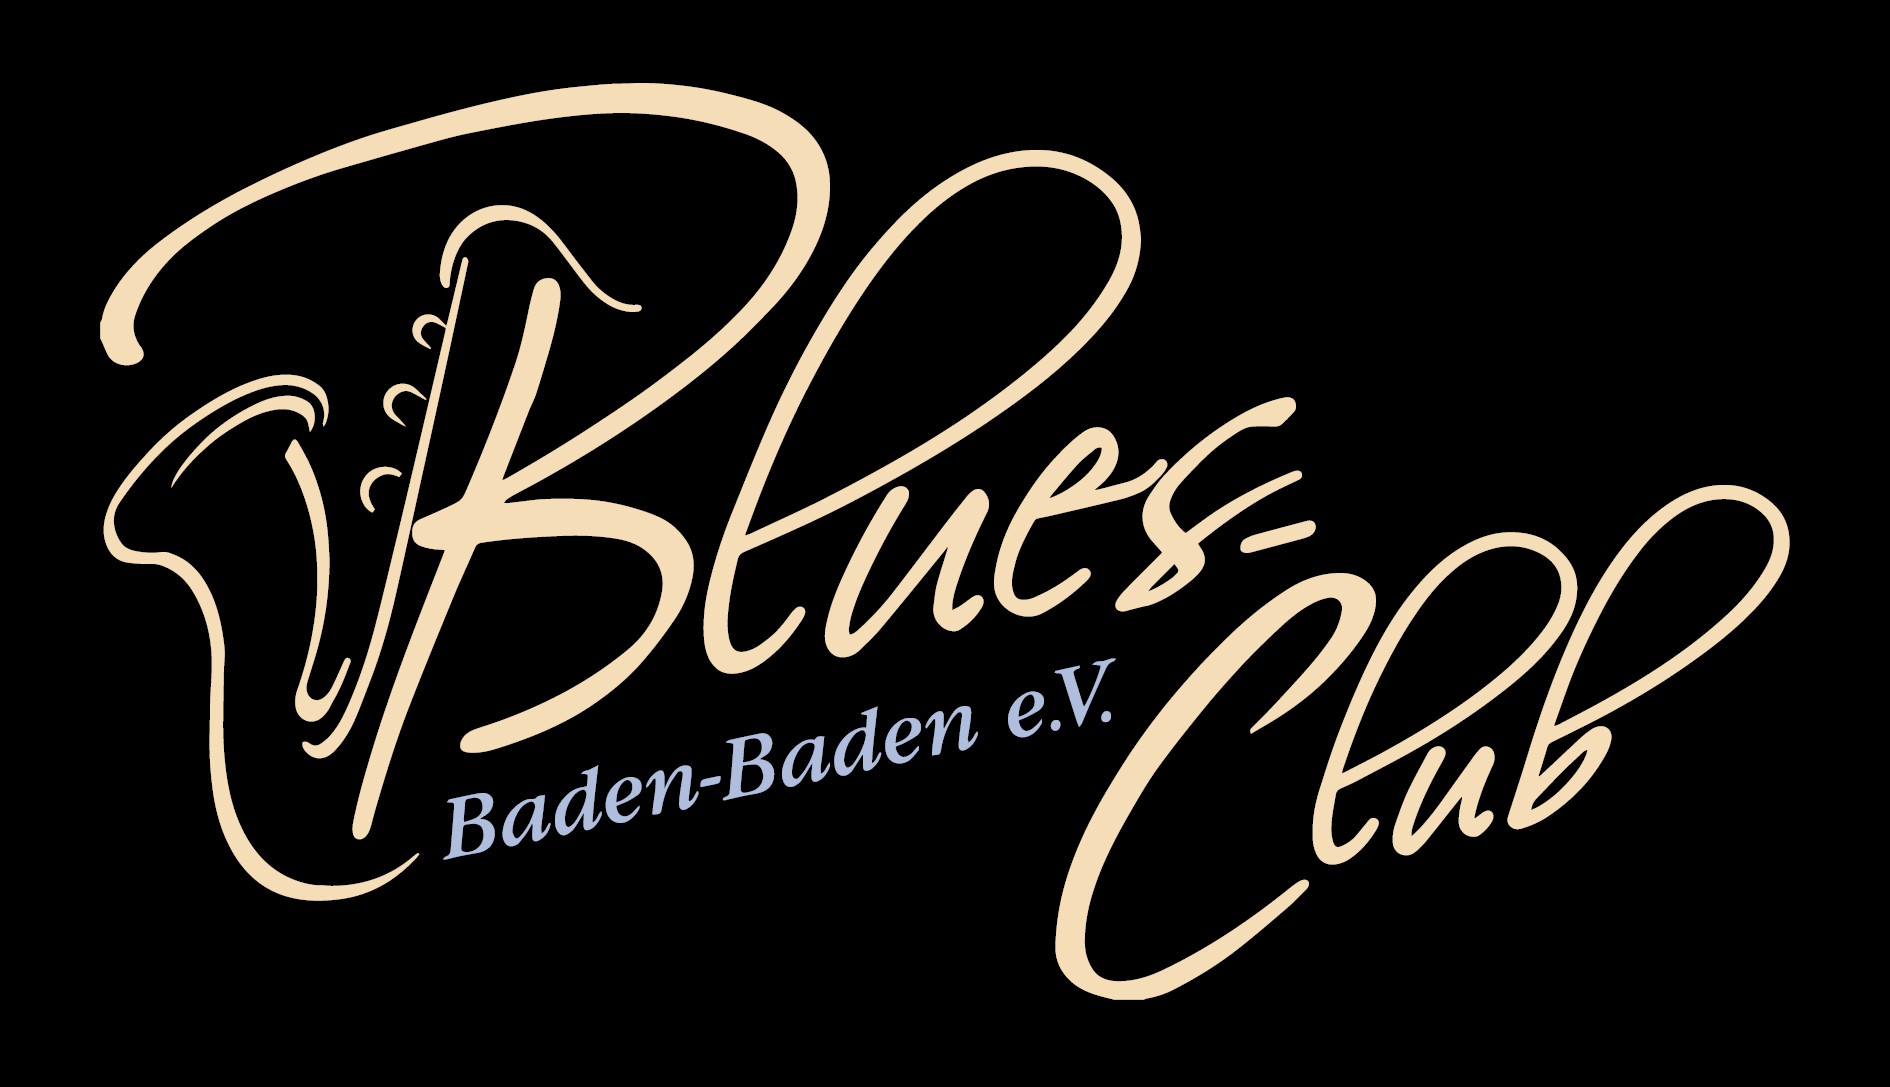 Blues-Club Baden-Baden e.V.